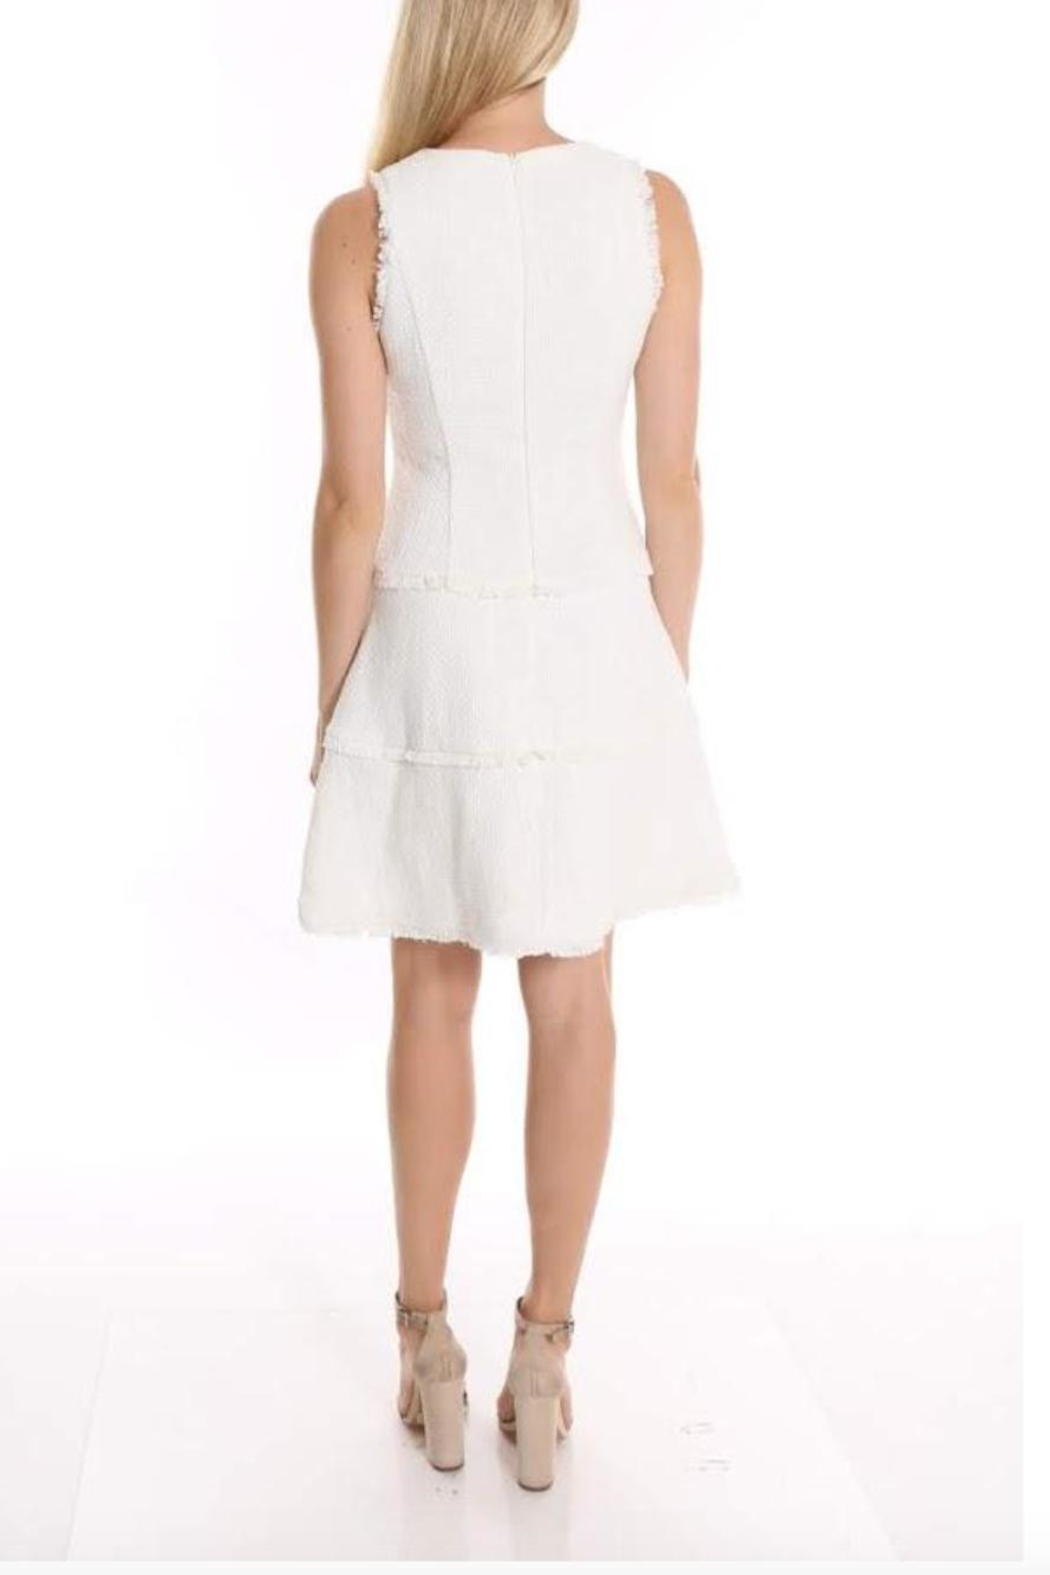 LIKELY Ivory Jewel Dress - Front Full Image